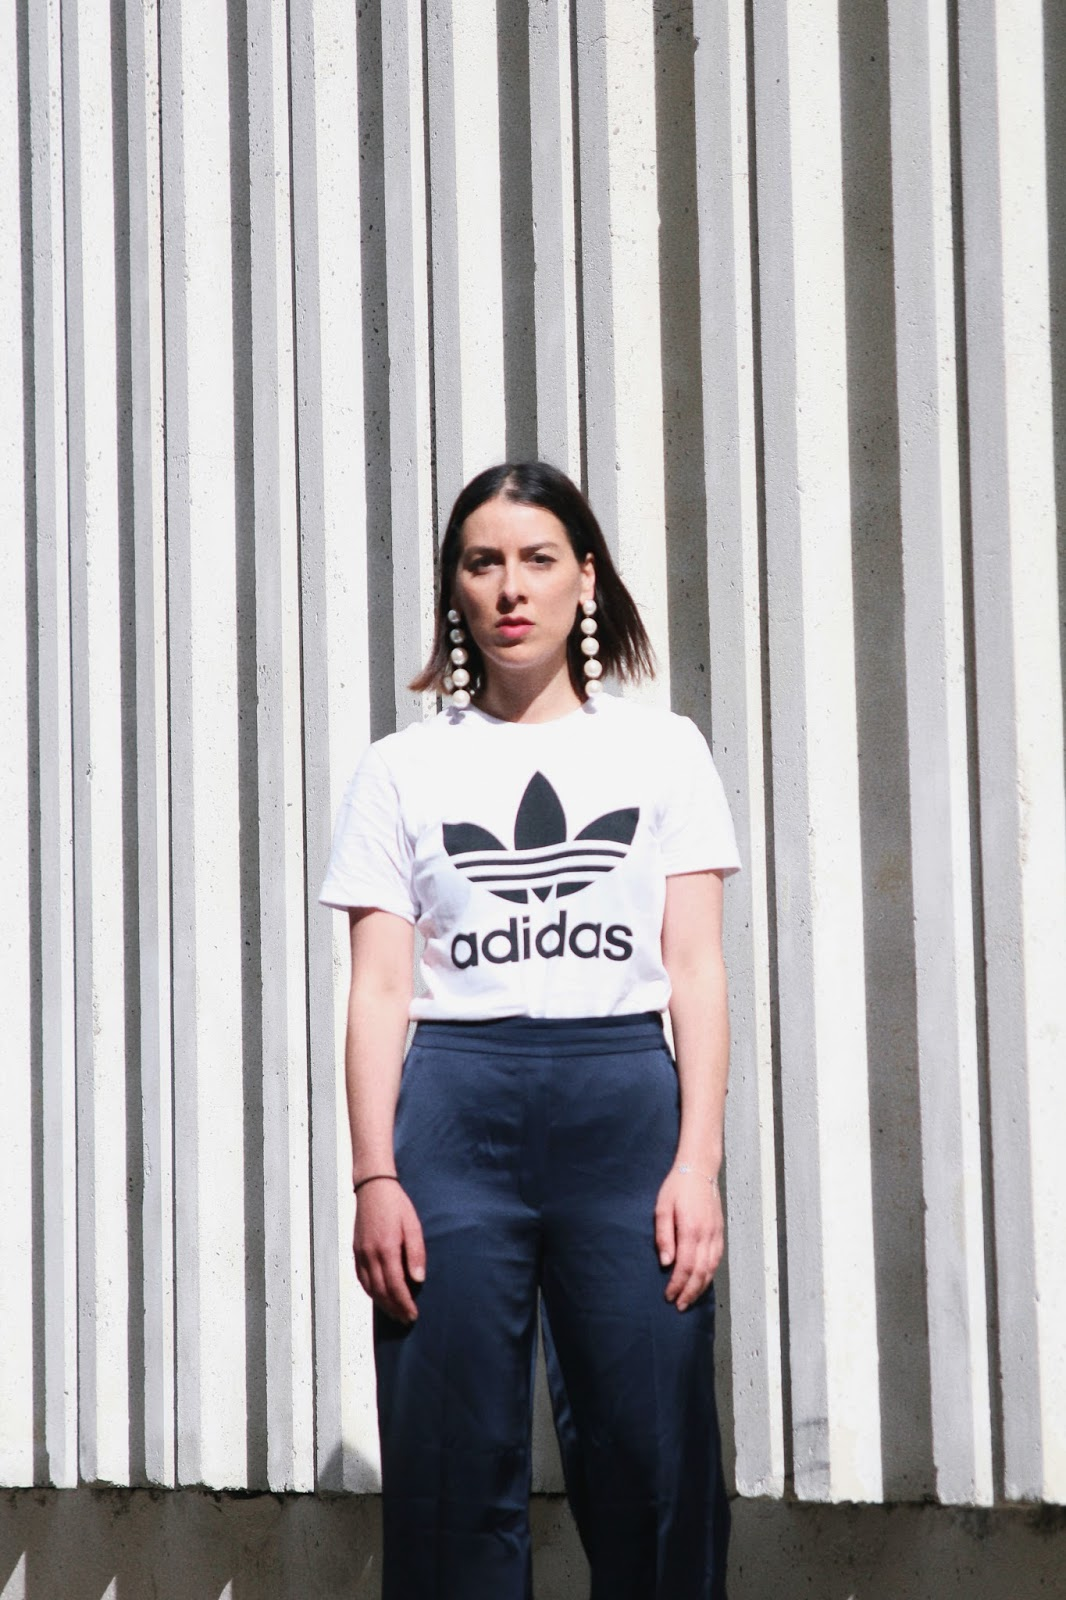 t-shirt-adidas-pantalon-large-idée-de-look